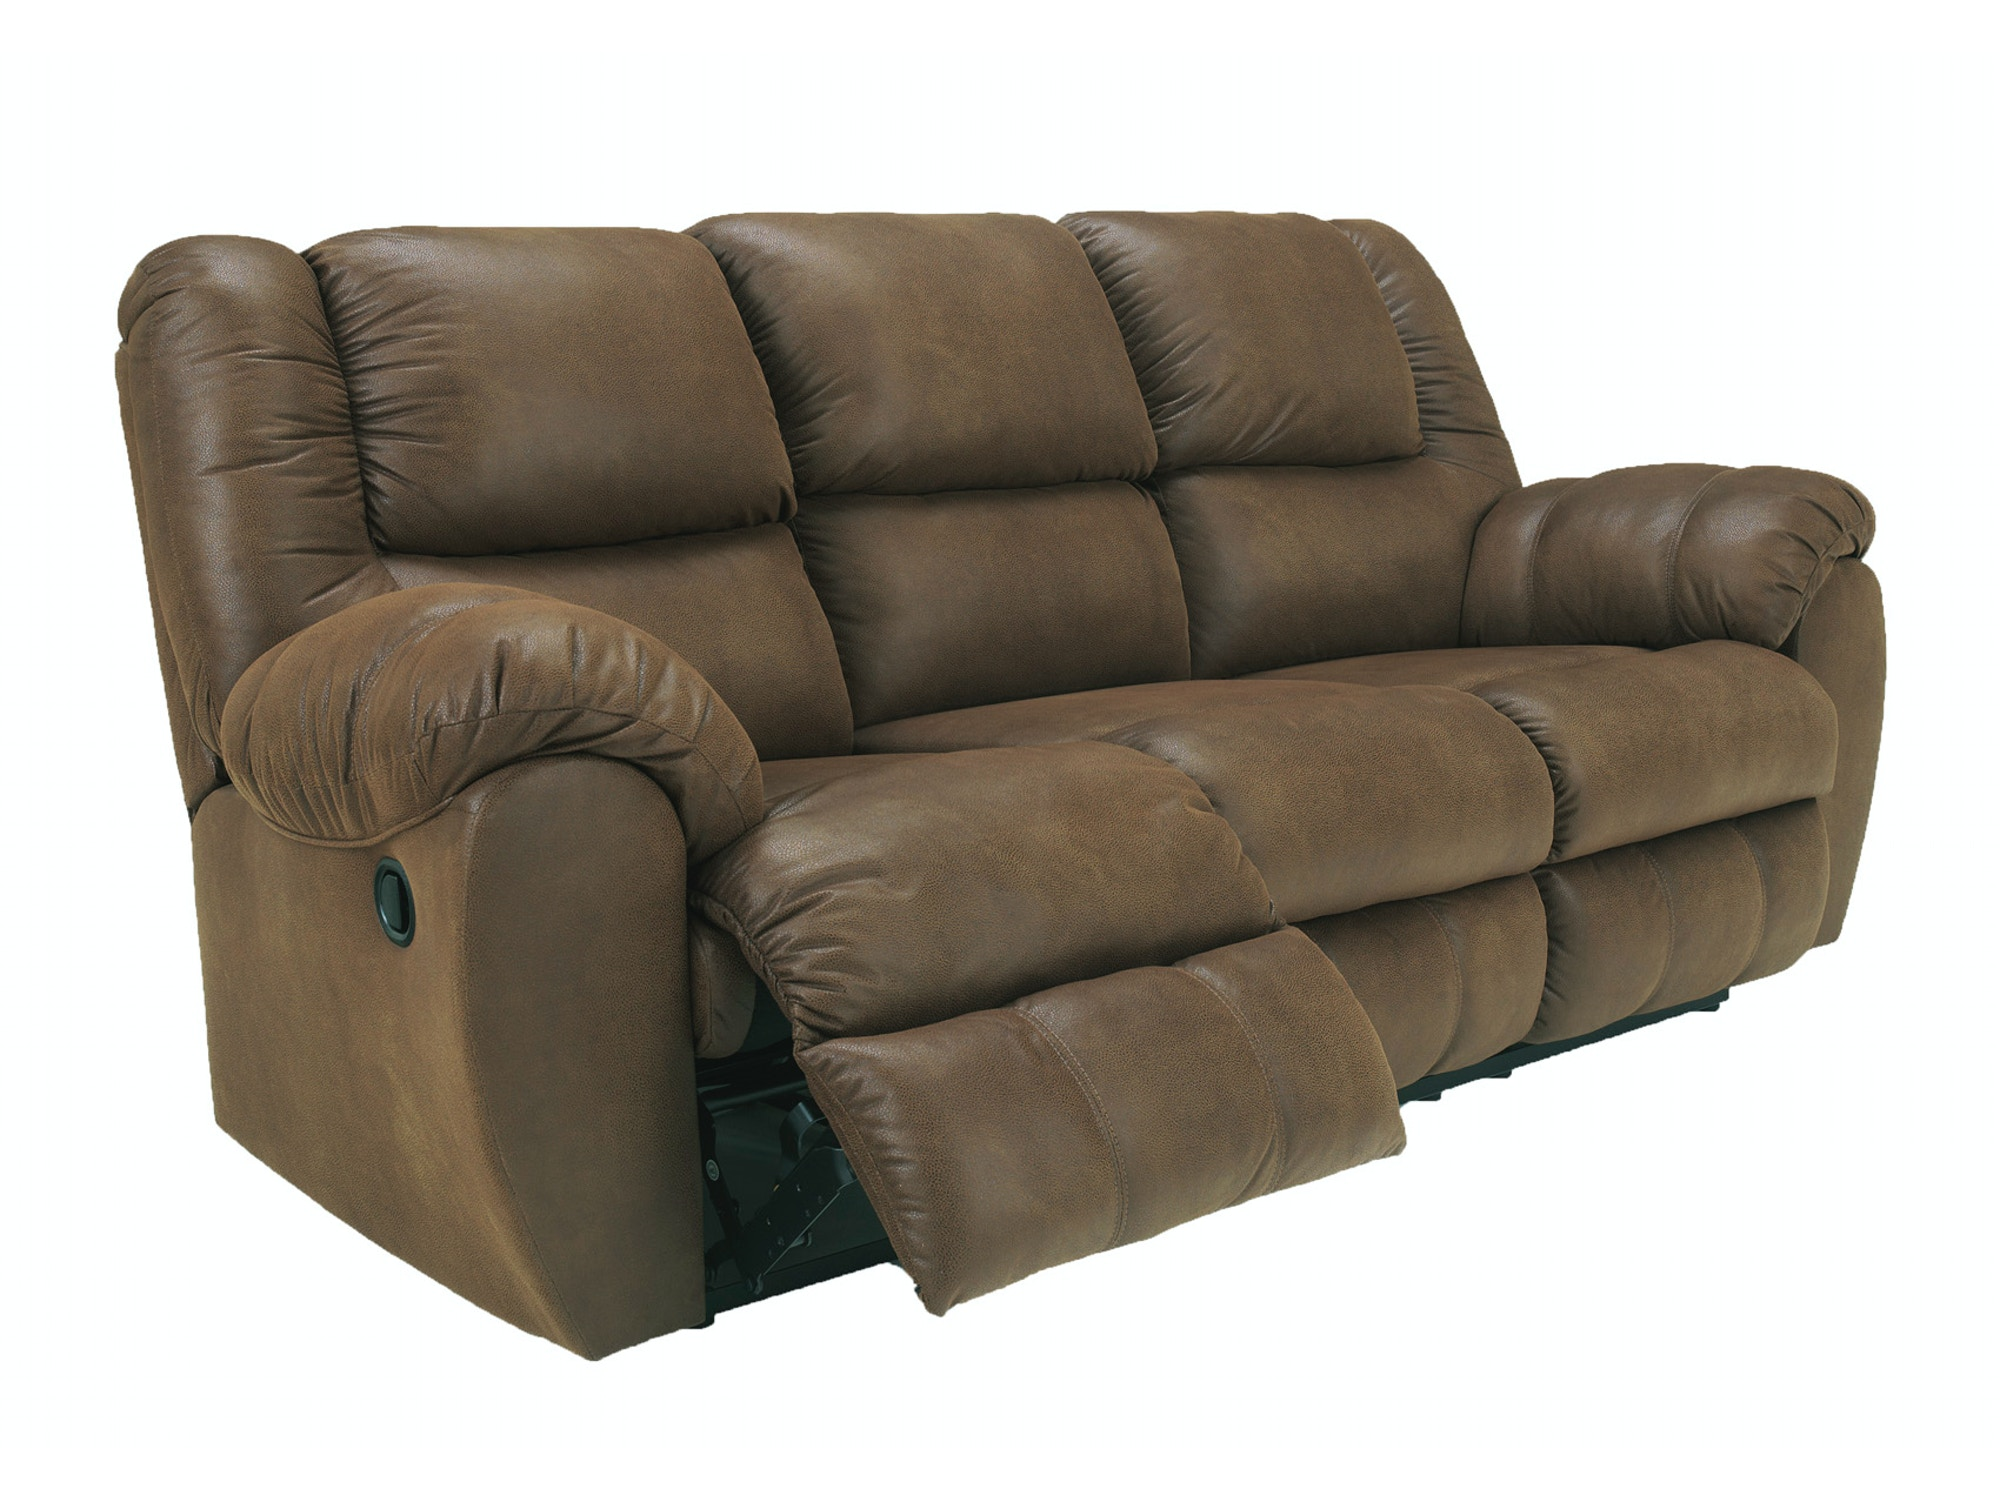 Sofas cincinnati sectional sofas furniture cozy living for Sectional sofa furniture fair